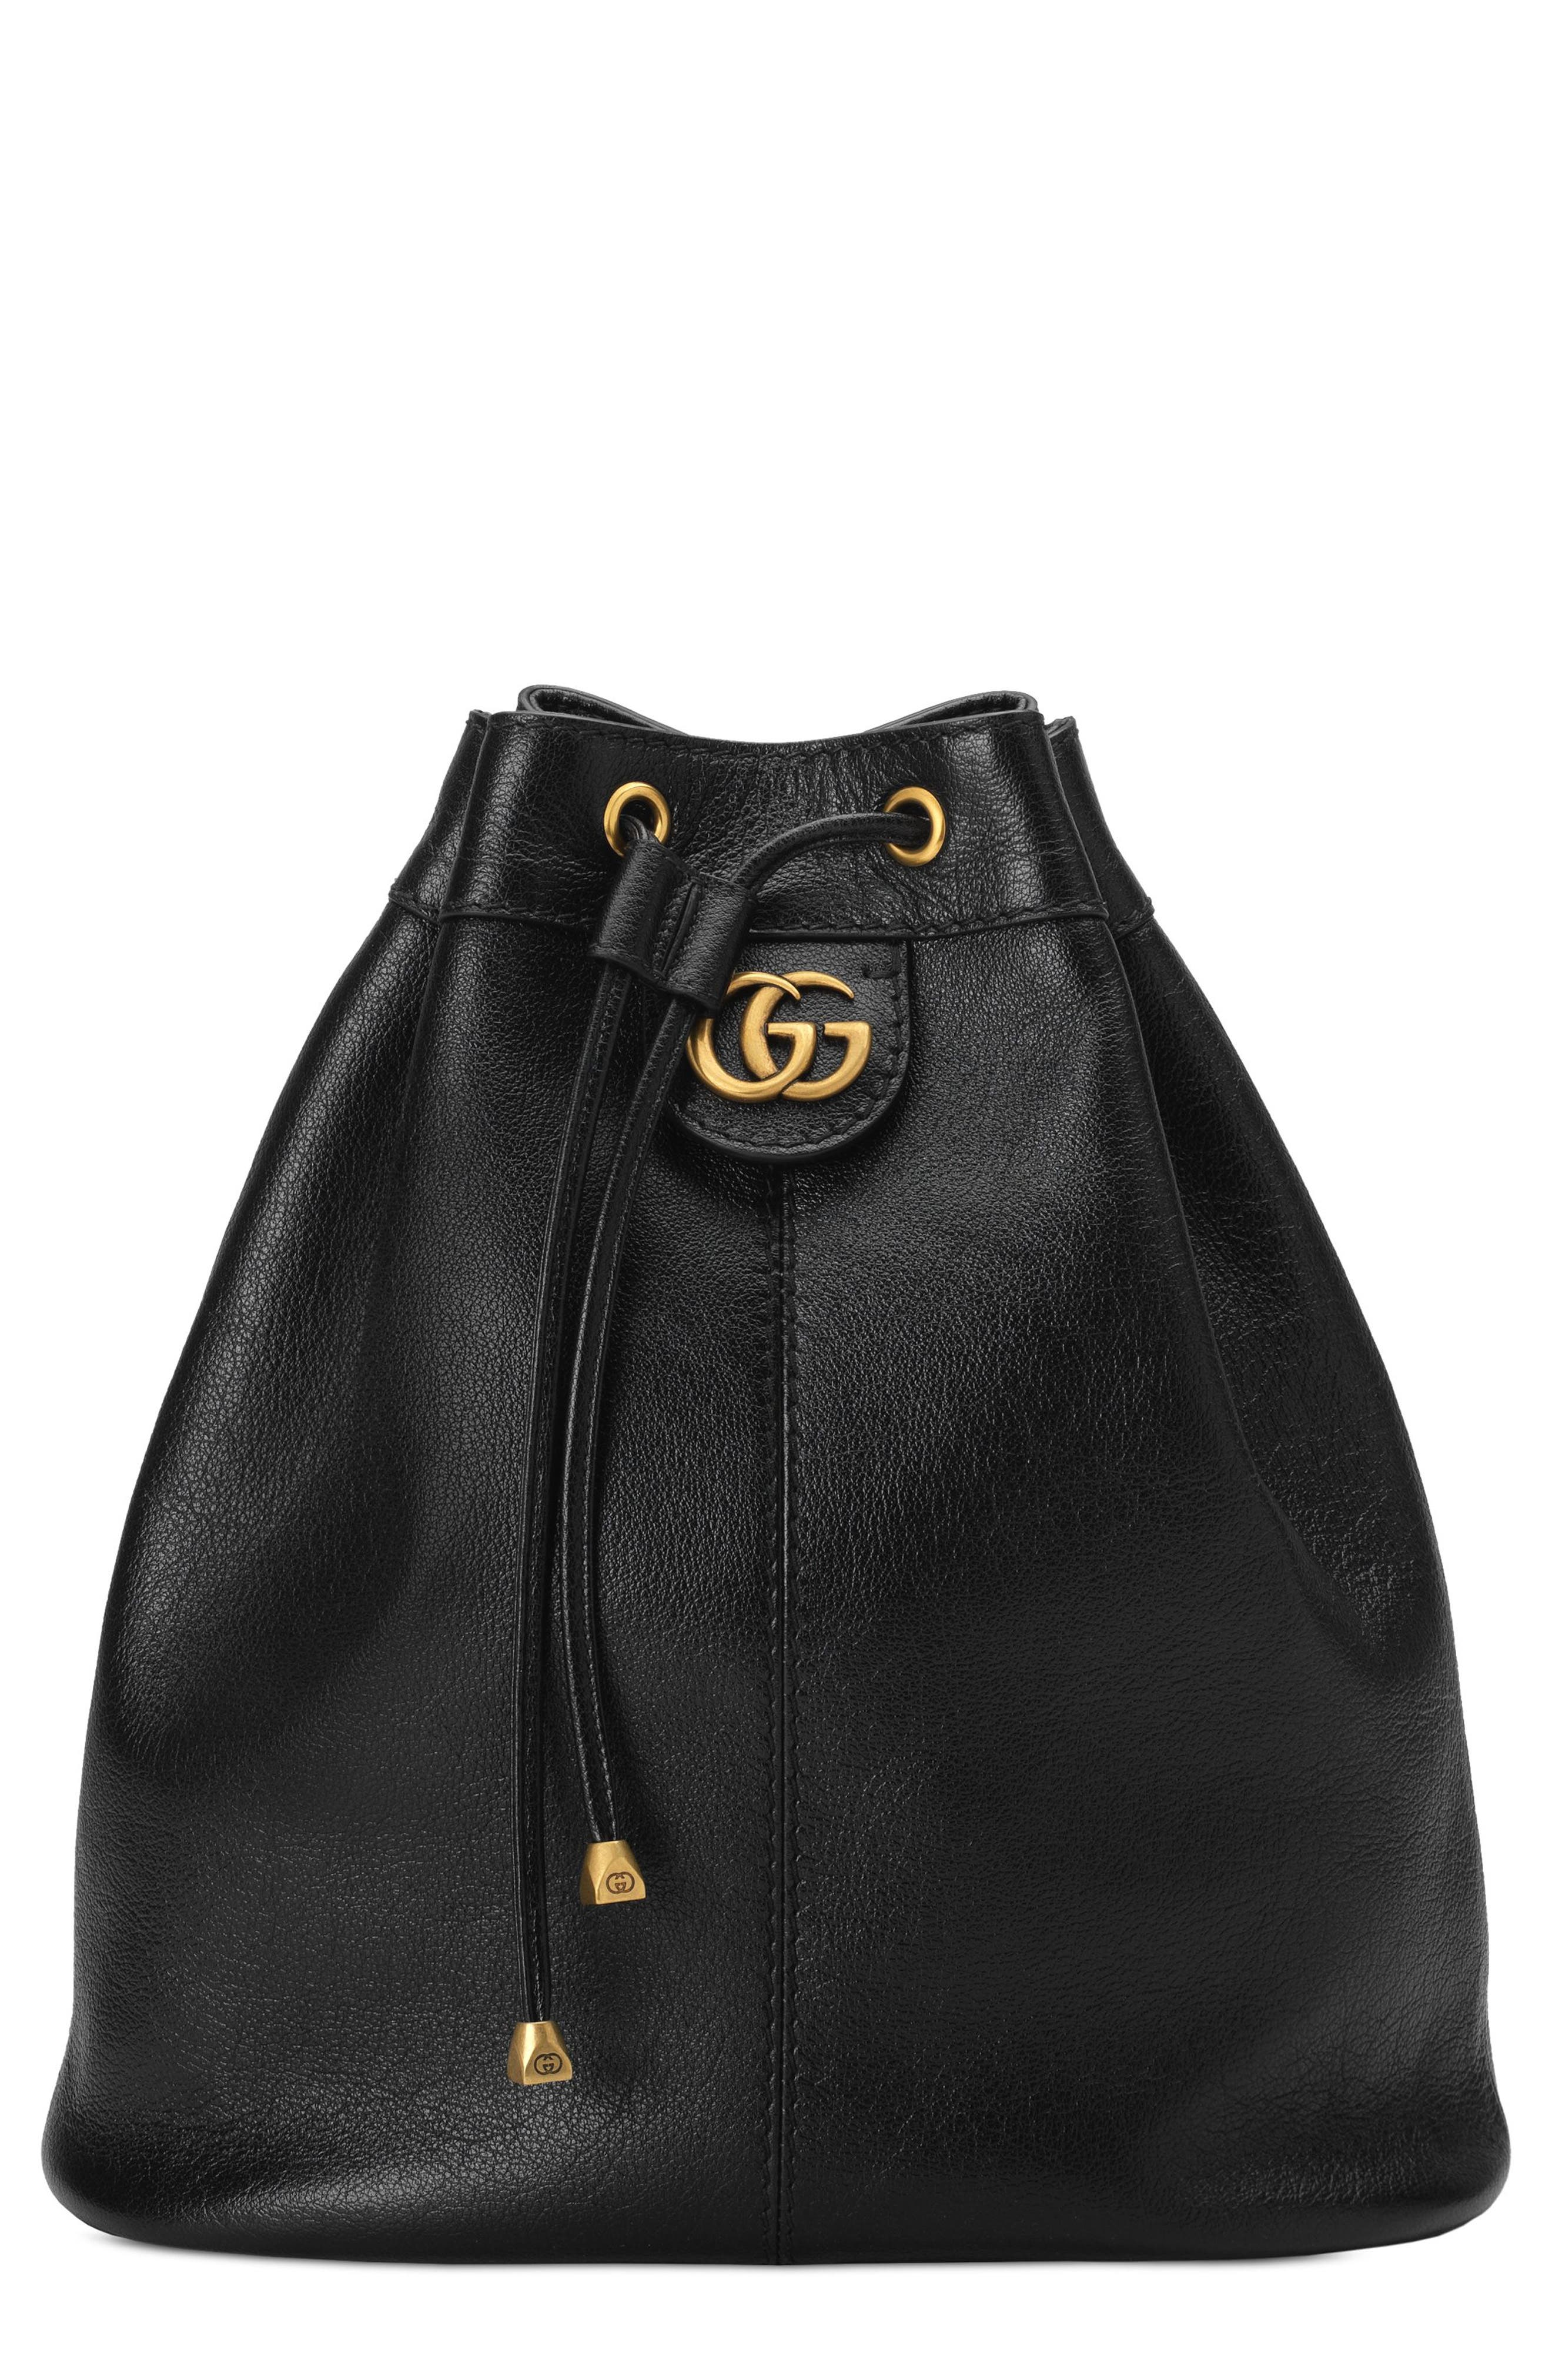 3838afb3a54a gucci backpack | Nordstrom